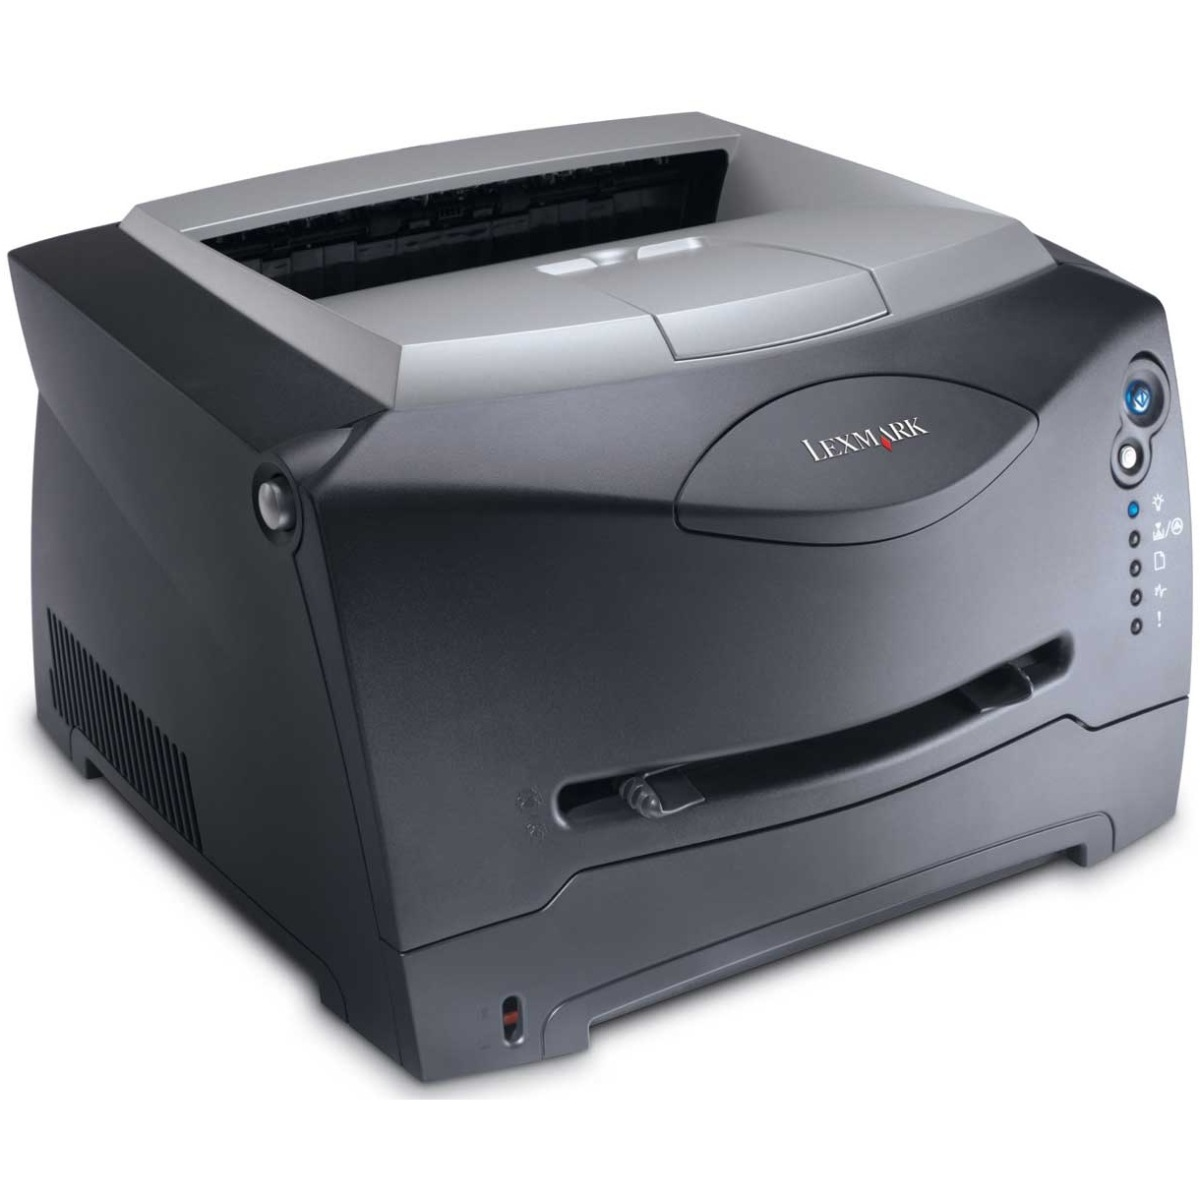 LEXMARK E322 PRINTER WINDOWS 8.1 DRIVER